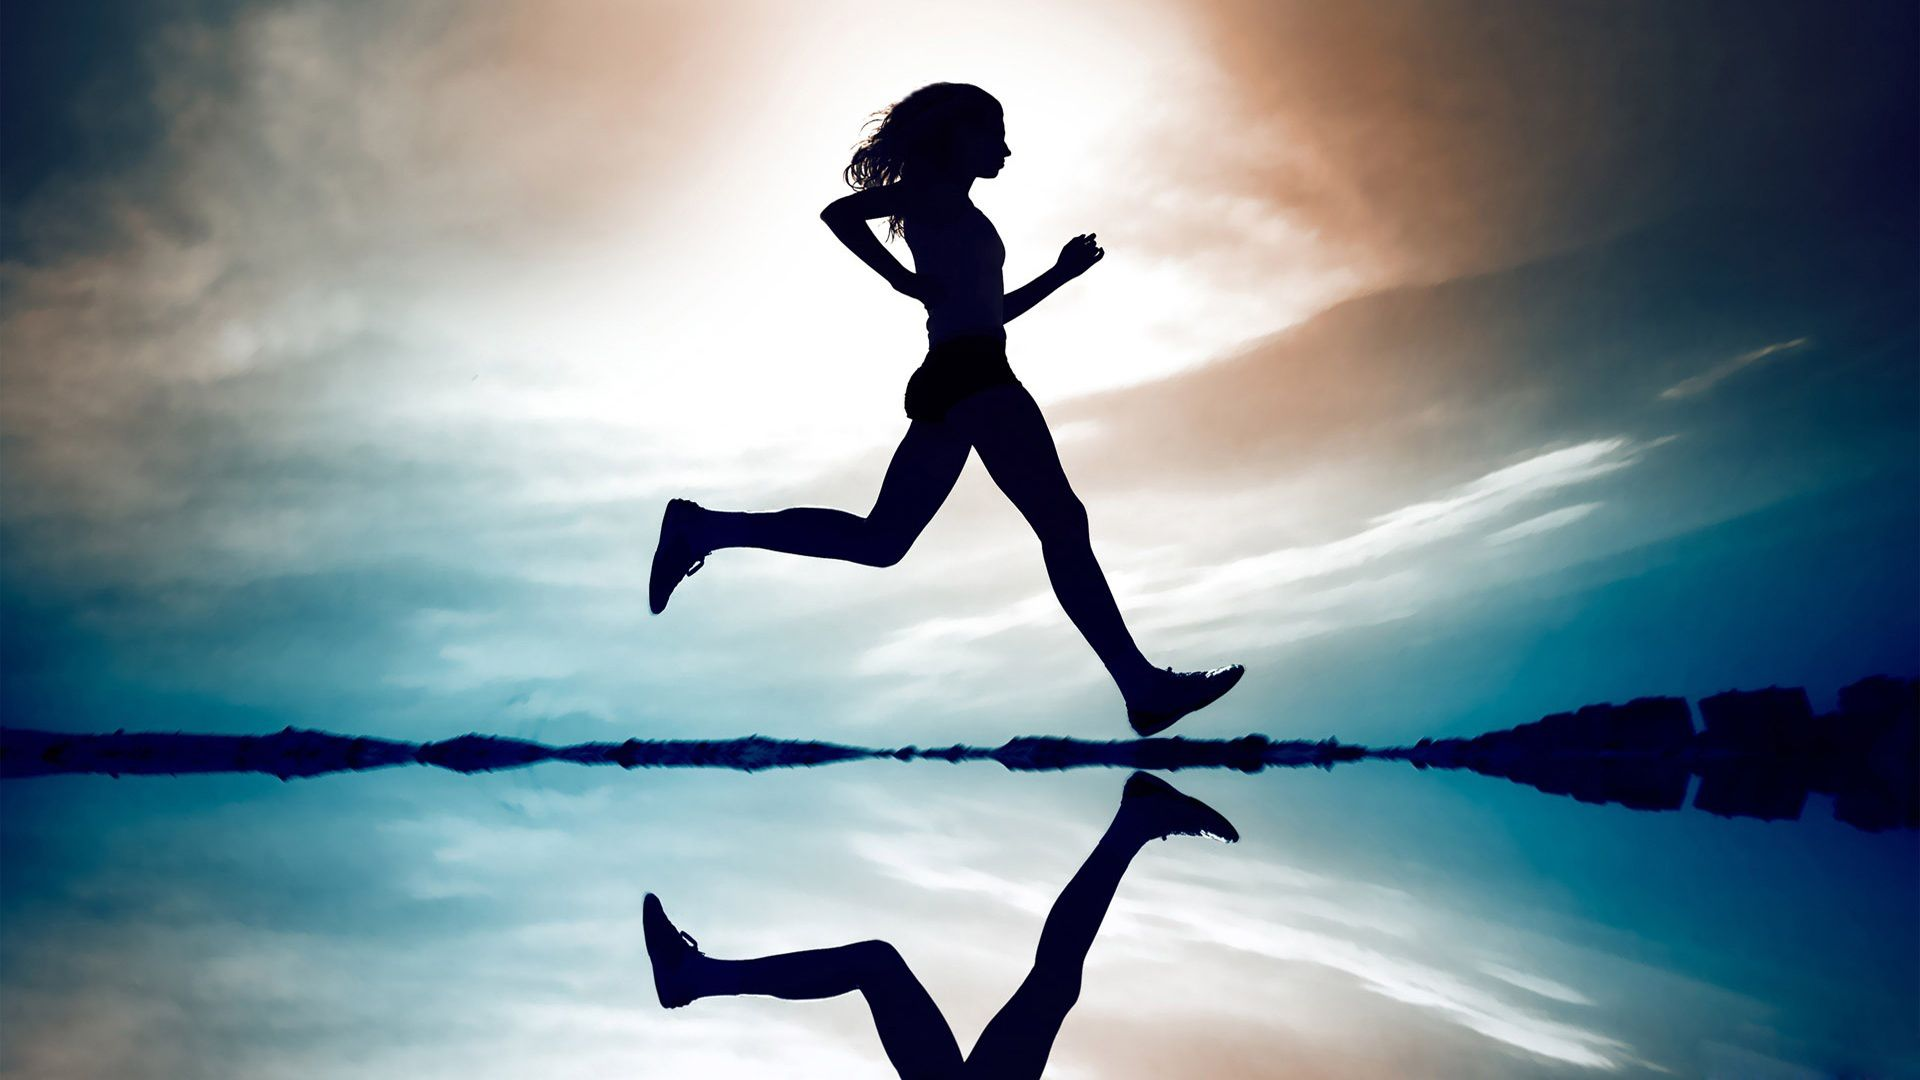 Free HD Fitness Wallpapers